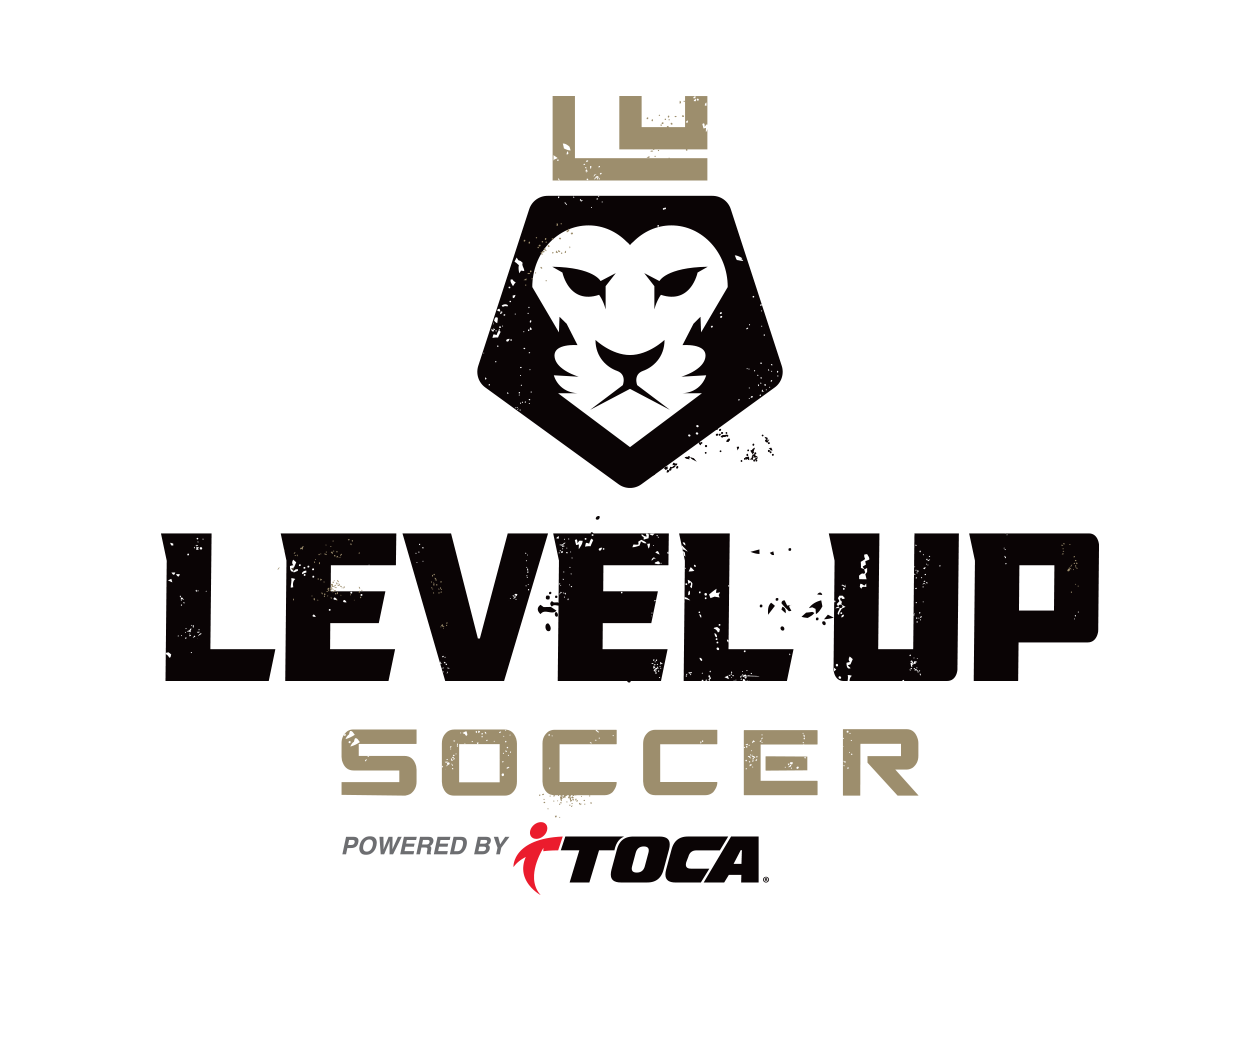 custom-sports-logo-design-by-jordan-fretz-for-level-up-soccer.jpg